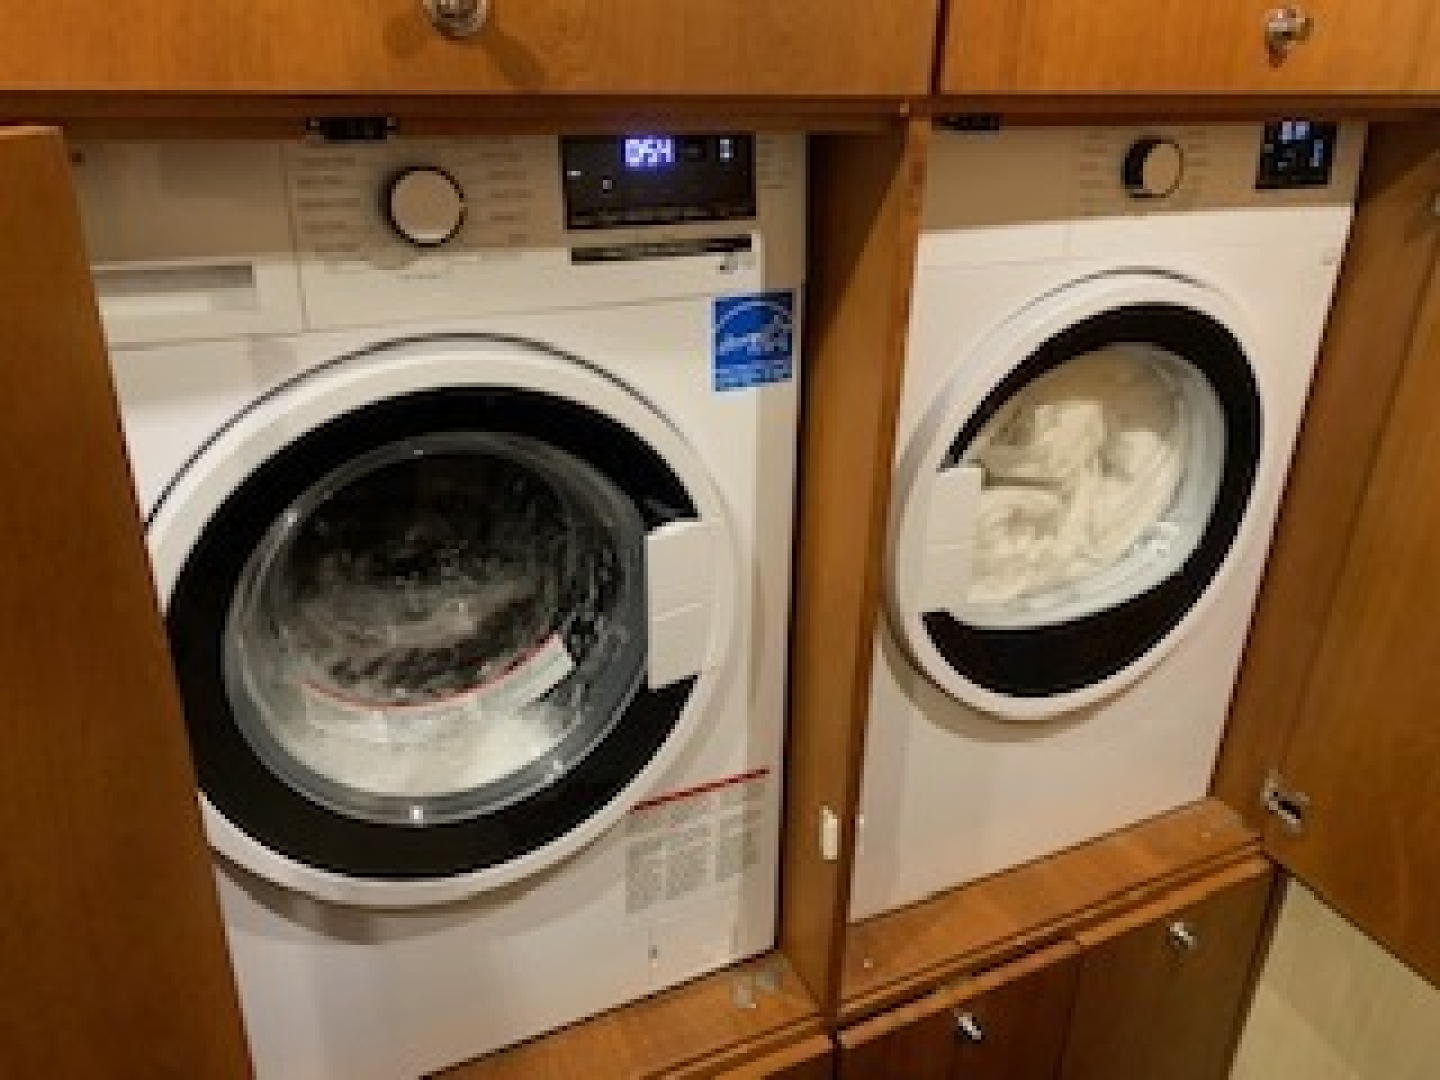 Ocean Yachts-Convertible 2009-Hog Wild Key West-Florida-United States-Washer and Dryer-1322150   Thumbnail